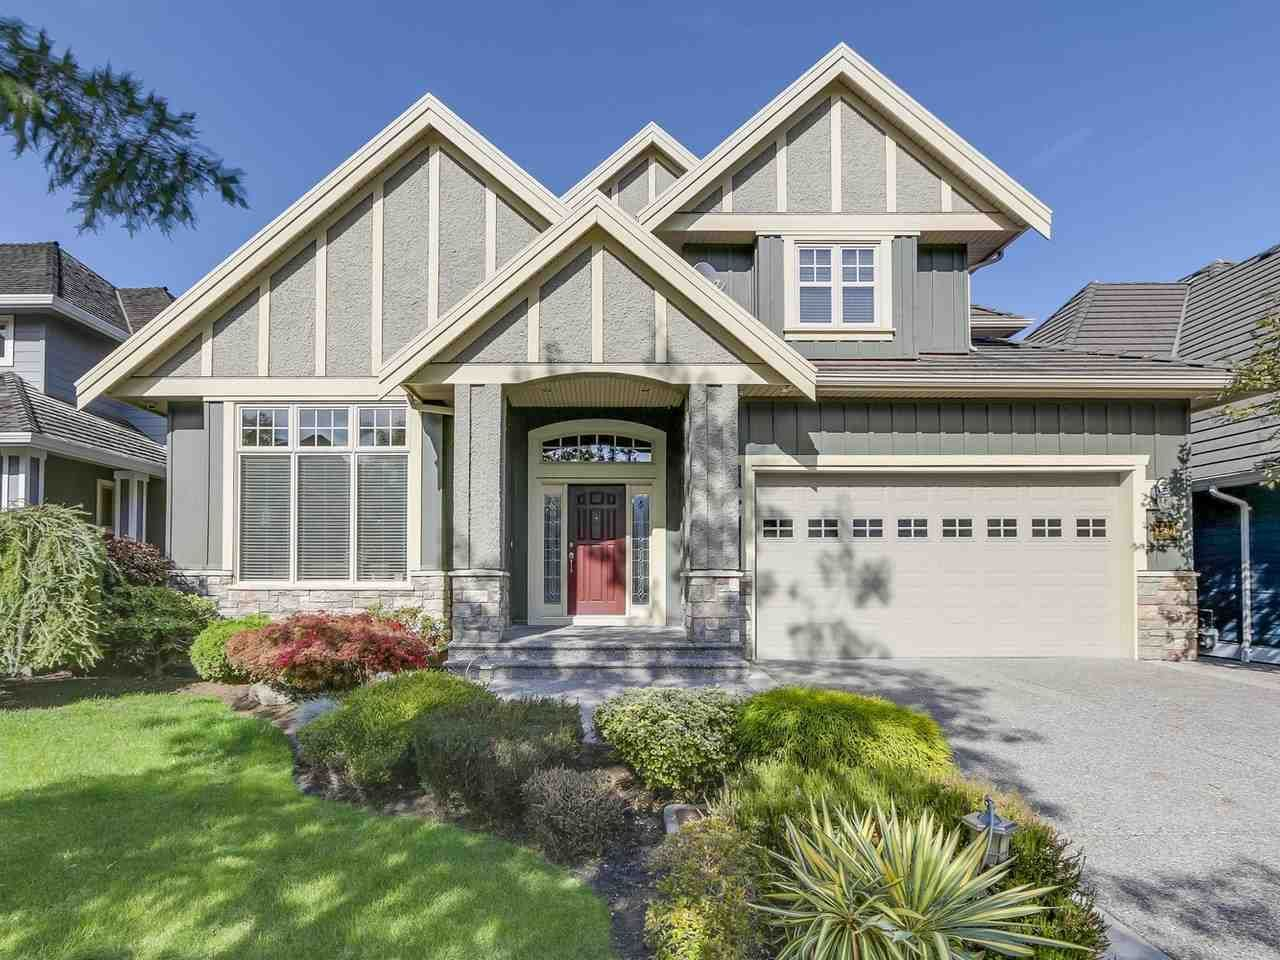 """Main Photo: 15491 37A Avenue in Surrey: Morgan Creek House for sale in """"Ironwood"""" (South Surrey White Rock)  : MLS®# R2212190"""